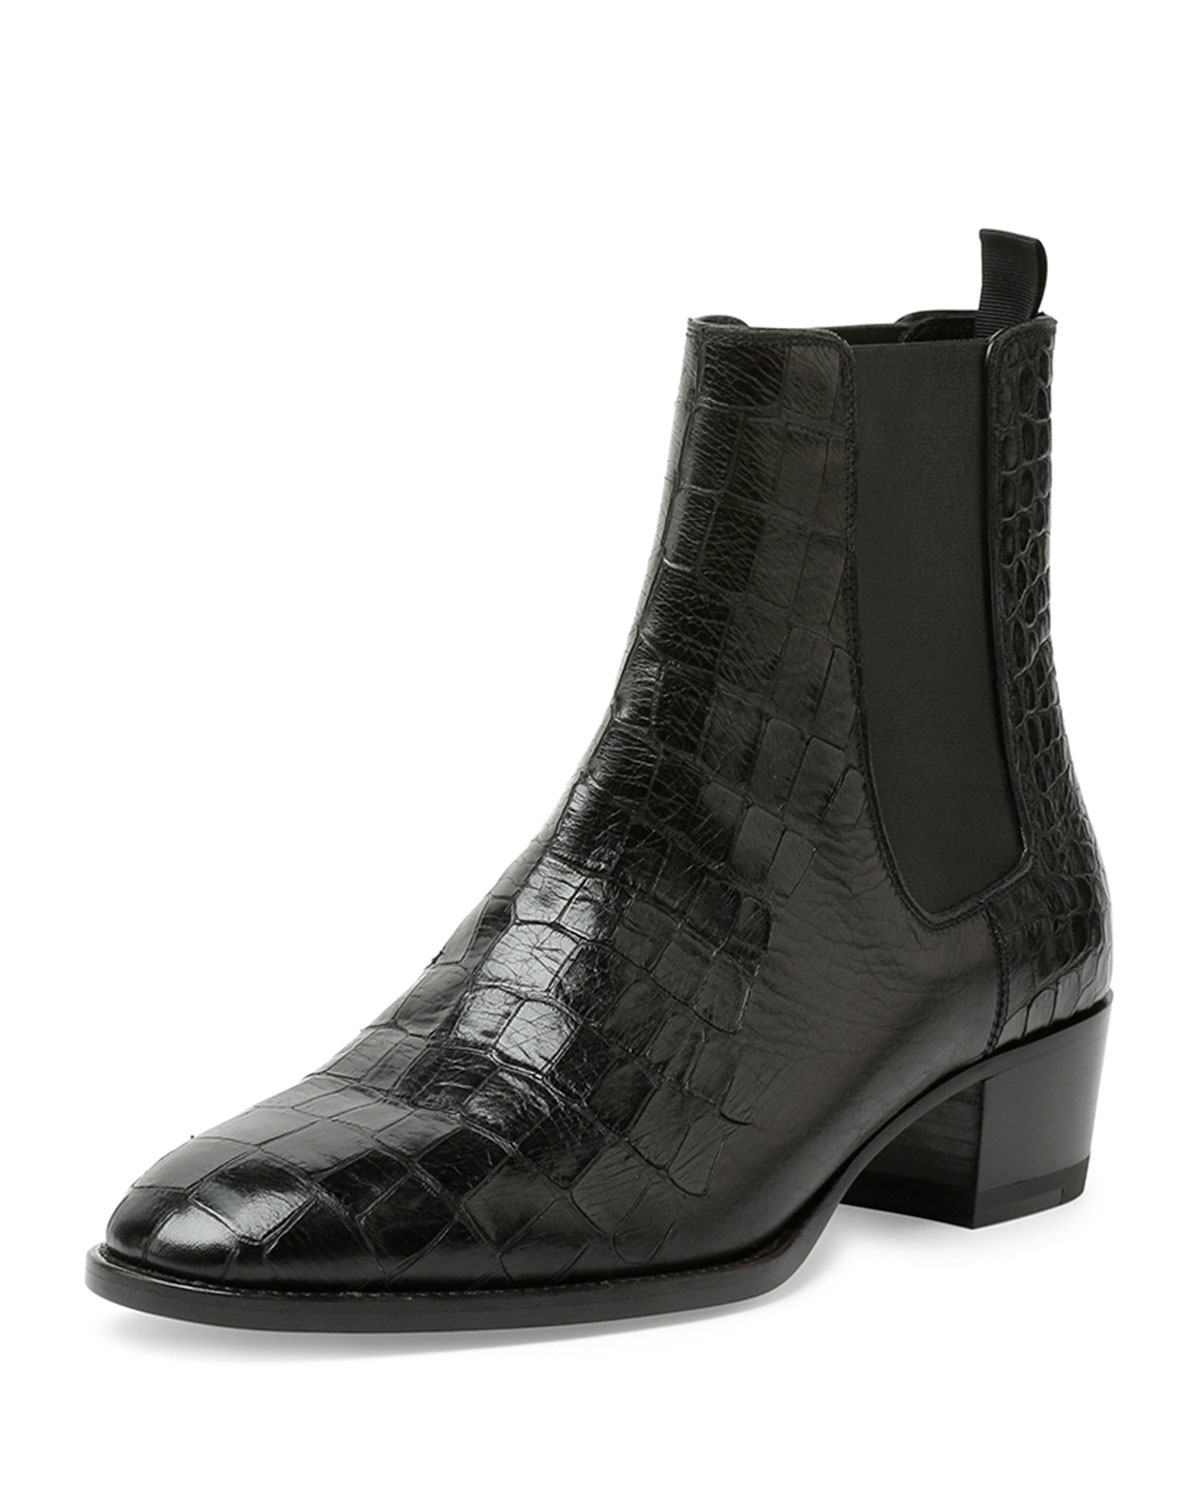 Saint Laurent Embossed Suede Ankle Boots discount cheap price popular cheap price sale big sale order for sale 87gwo